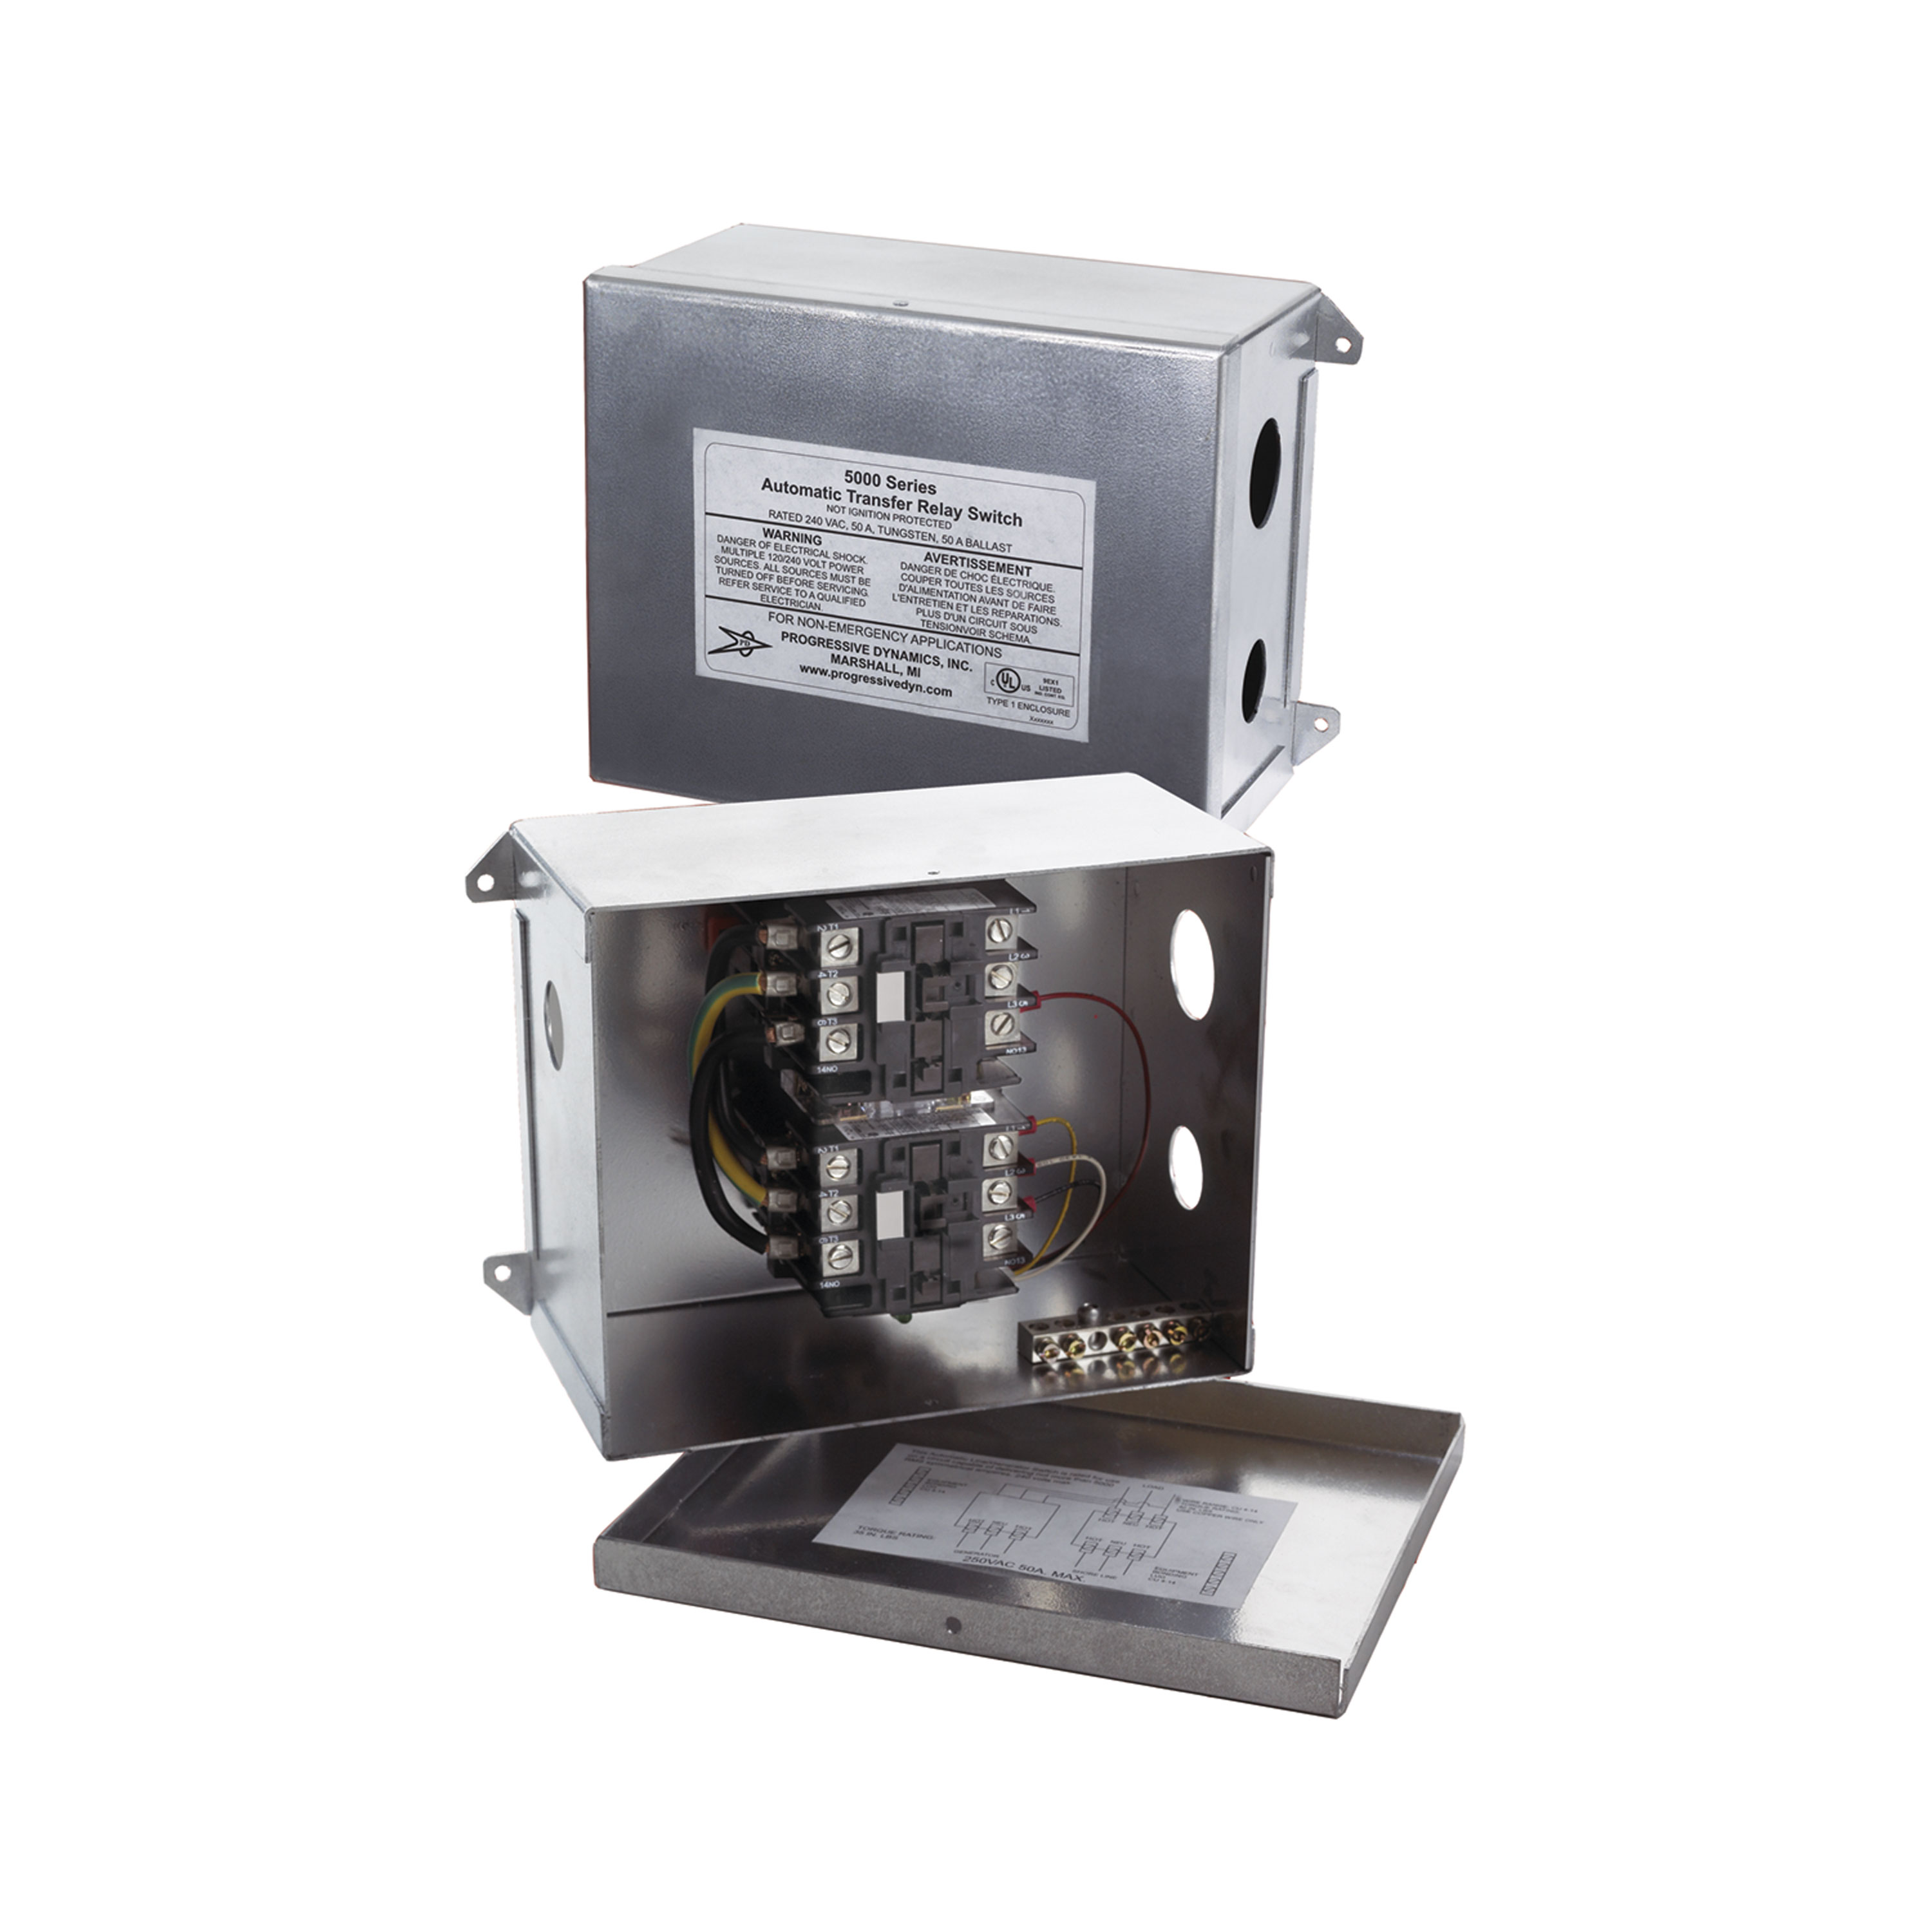 Progressive Dynamics PD5110010V 5100 Series Automatic Transfer Switch - 120 VAC, 30 Amp w/Pigtail Connection